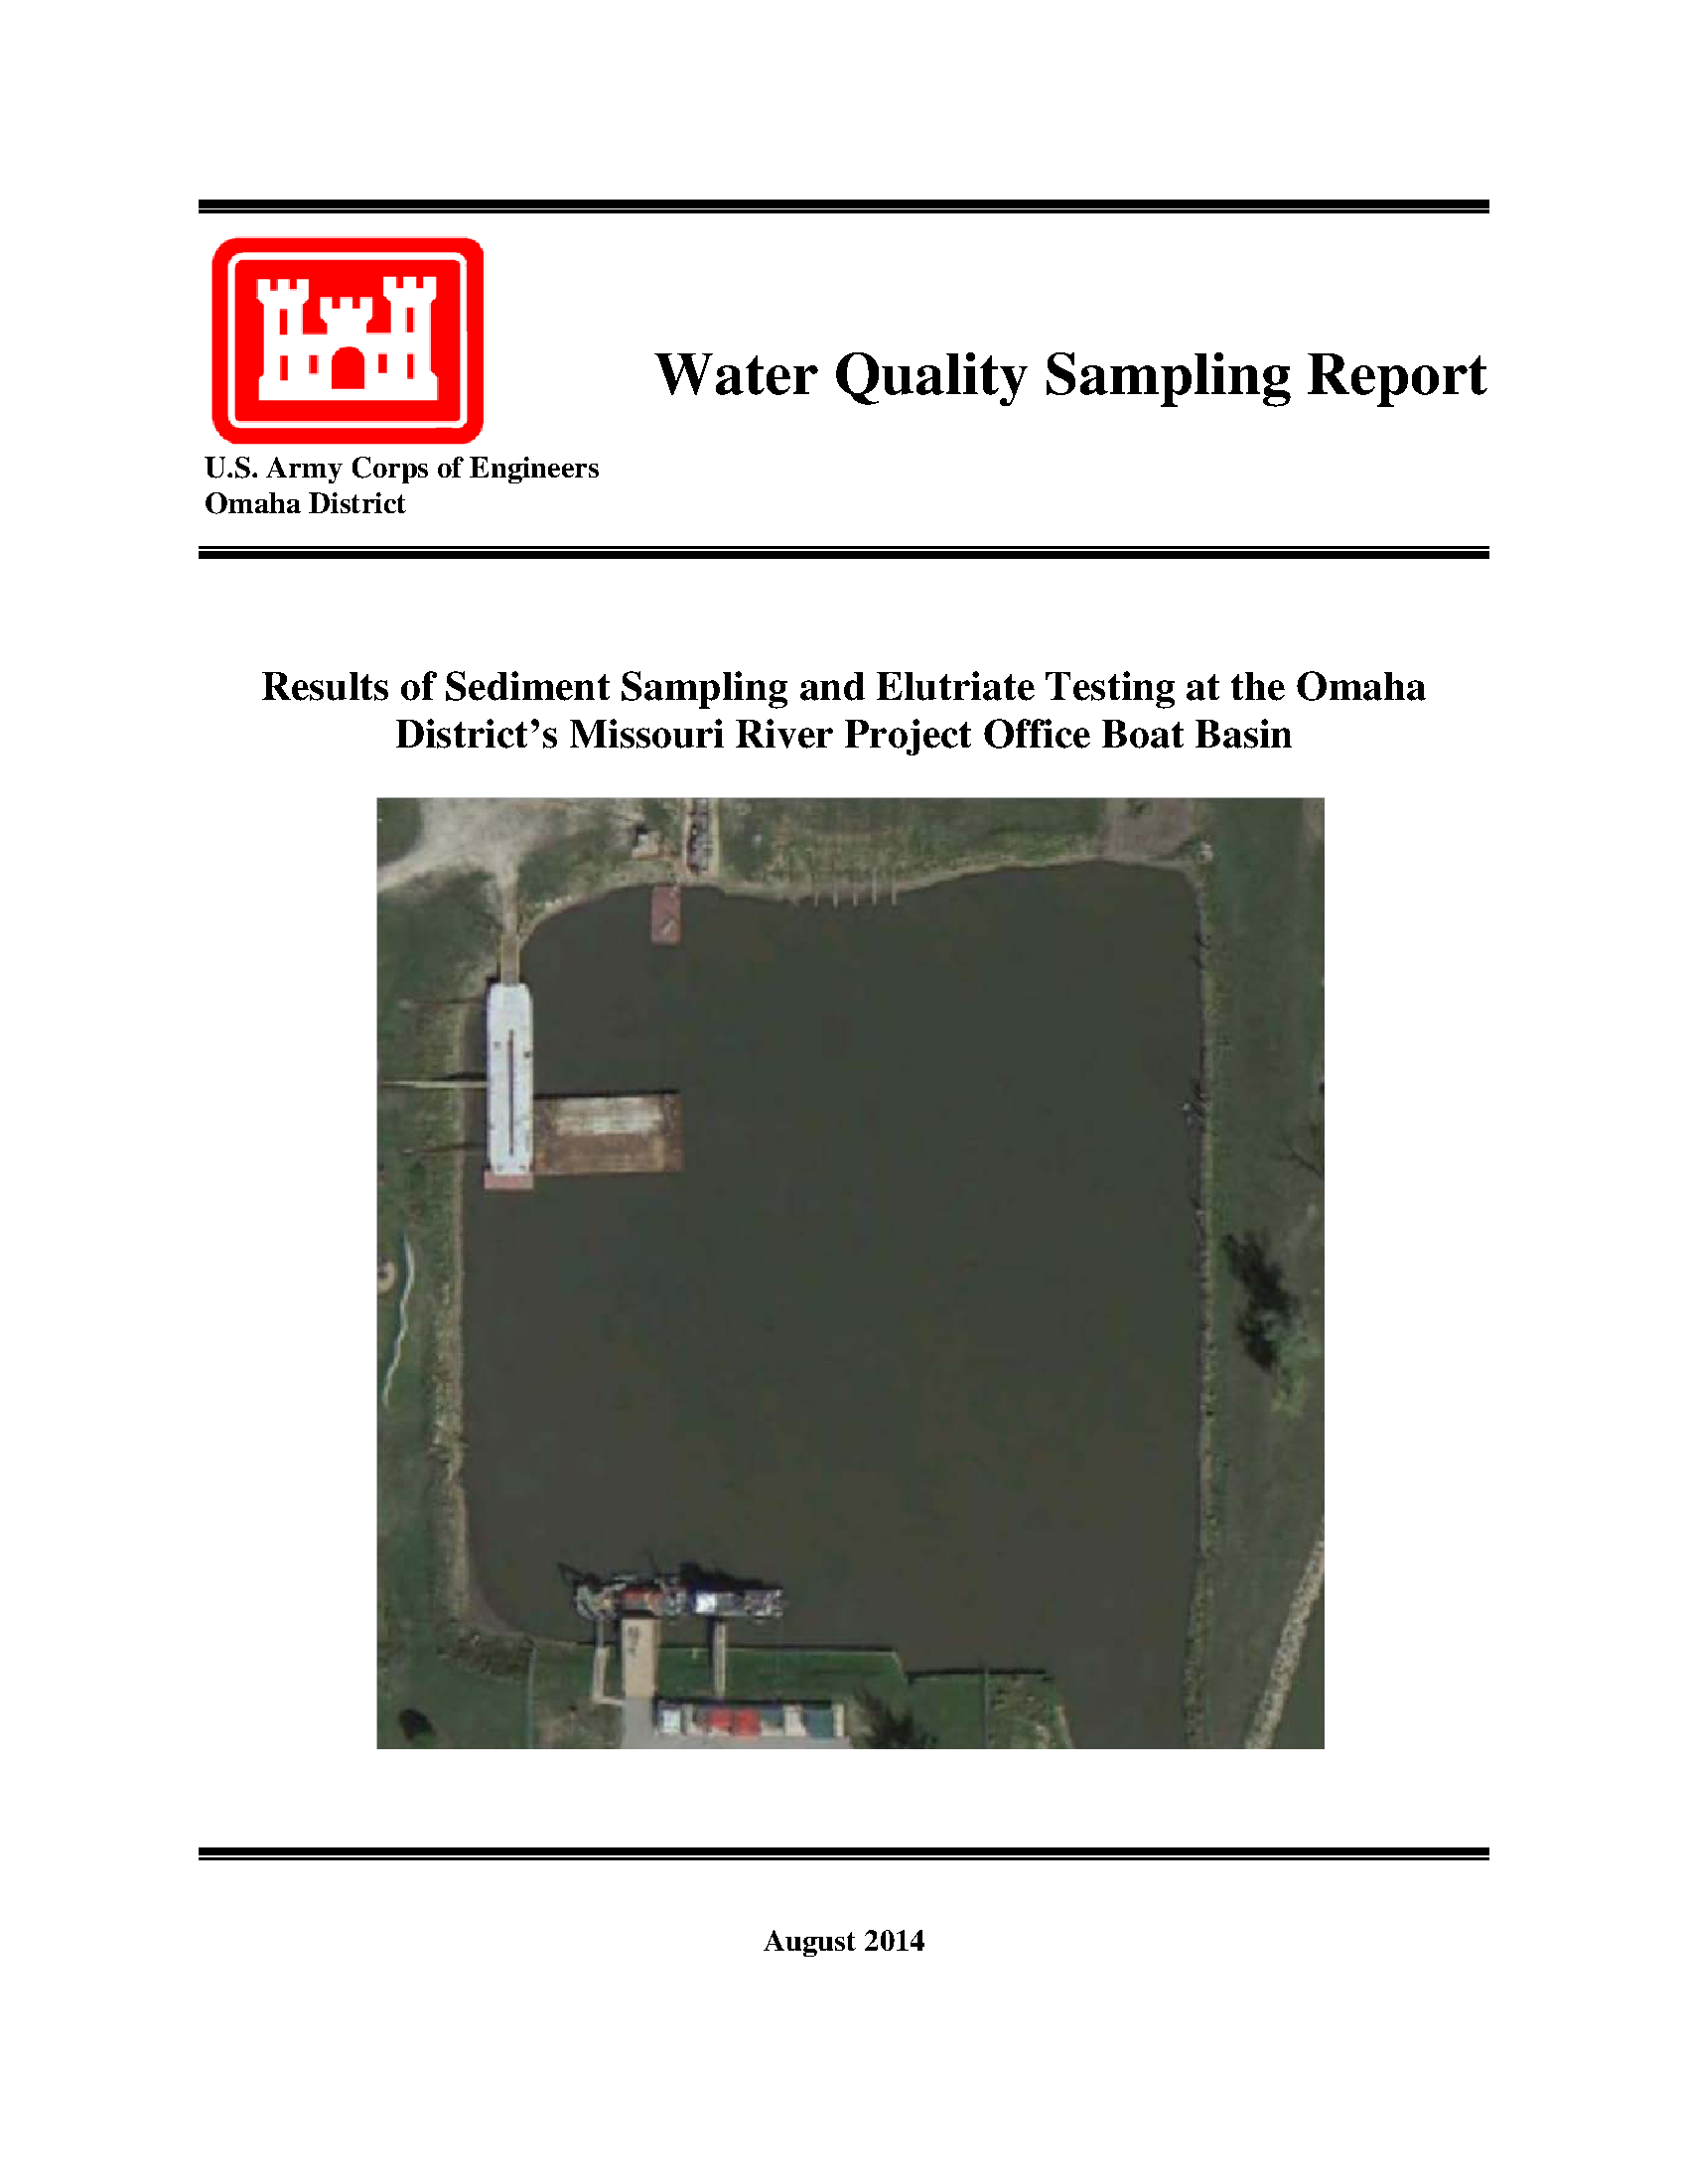 Water quality sampling report: Results of sediment sampling and